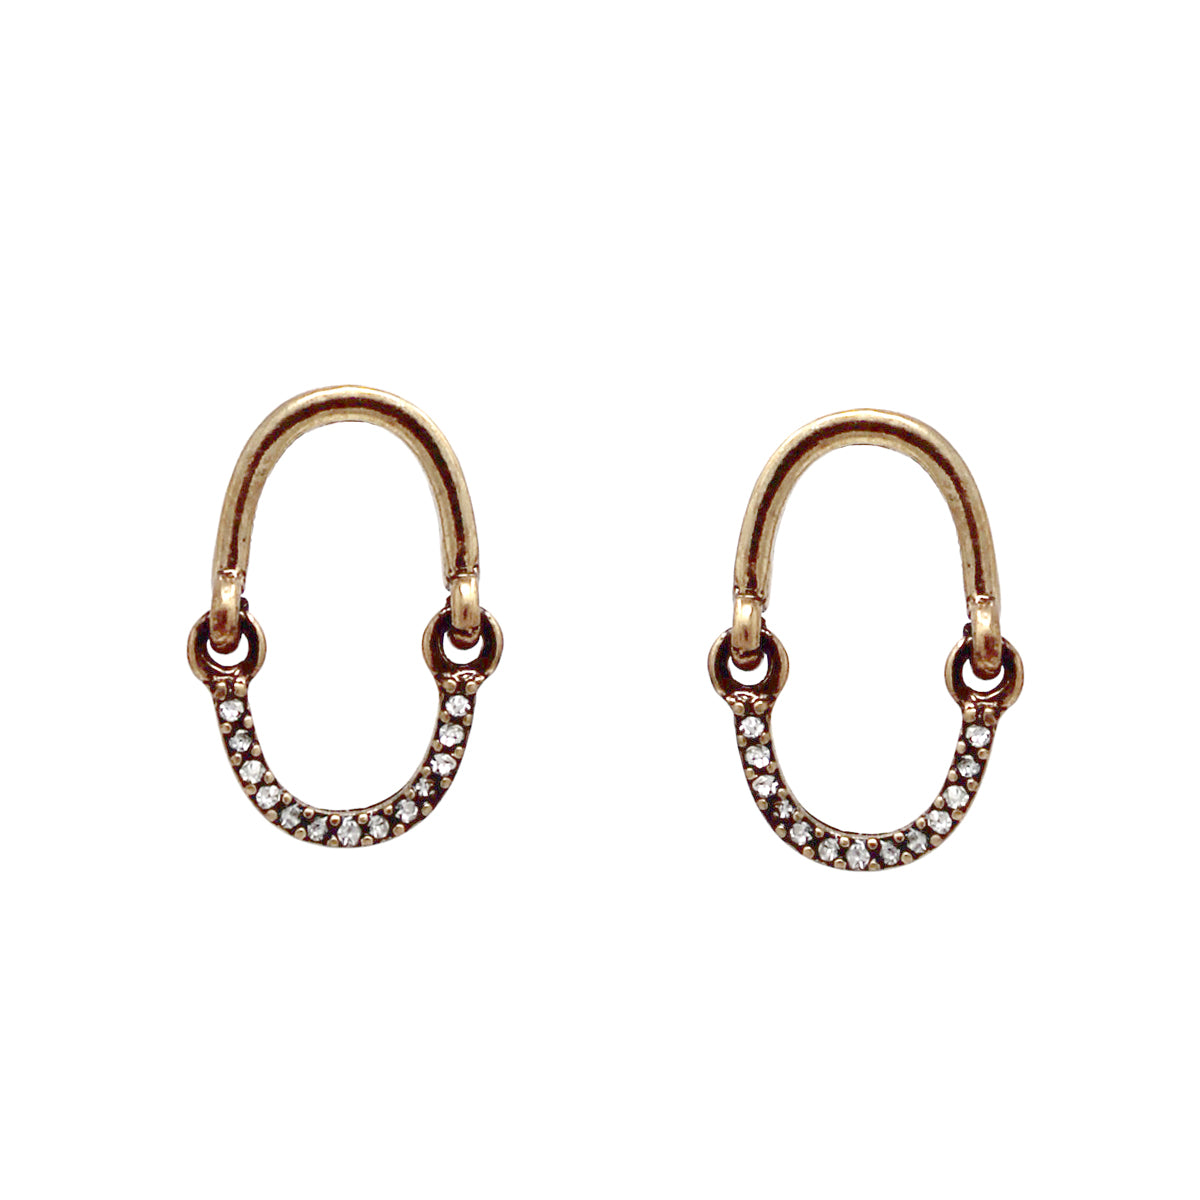 Rhinestone Pave Half Hoop Drop Earrings